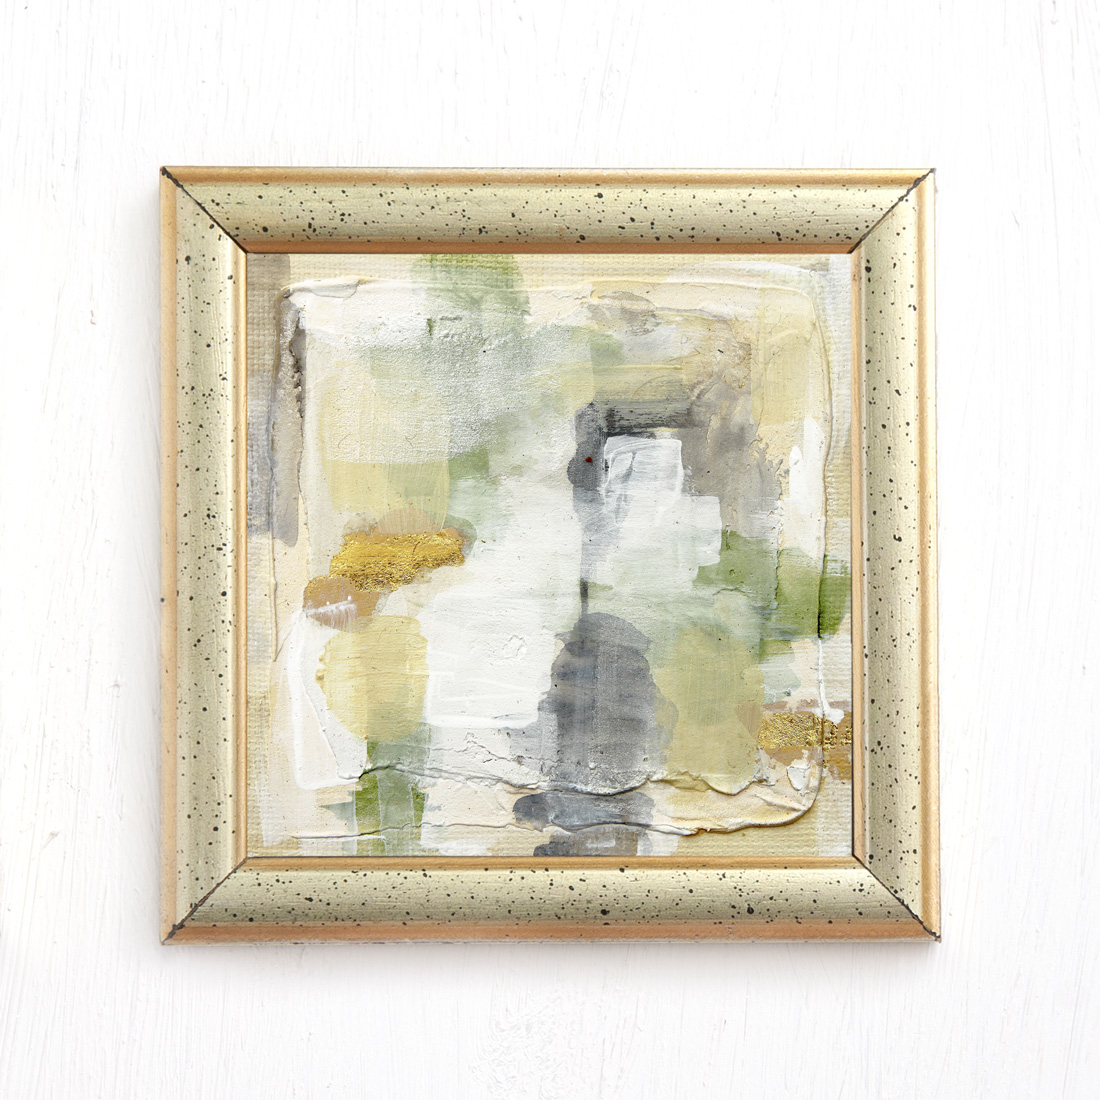 Pathway - abstract mixed media painting gray olive green beige by Jennifer Lorton.jpg